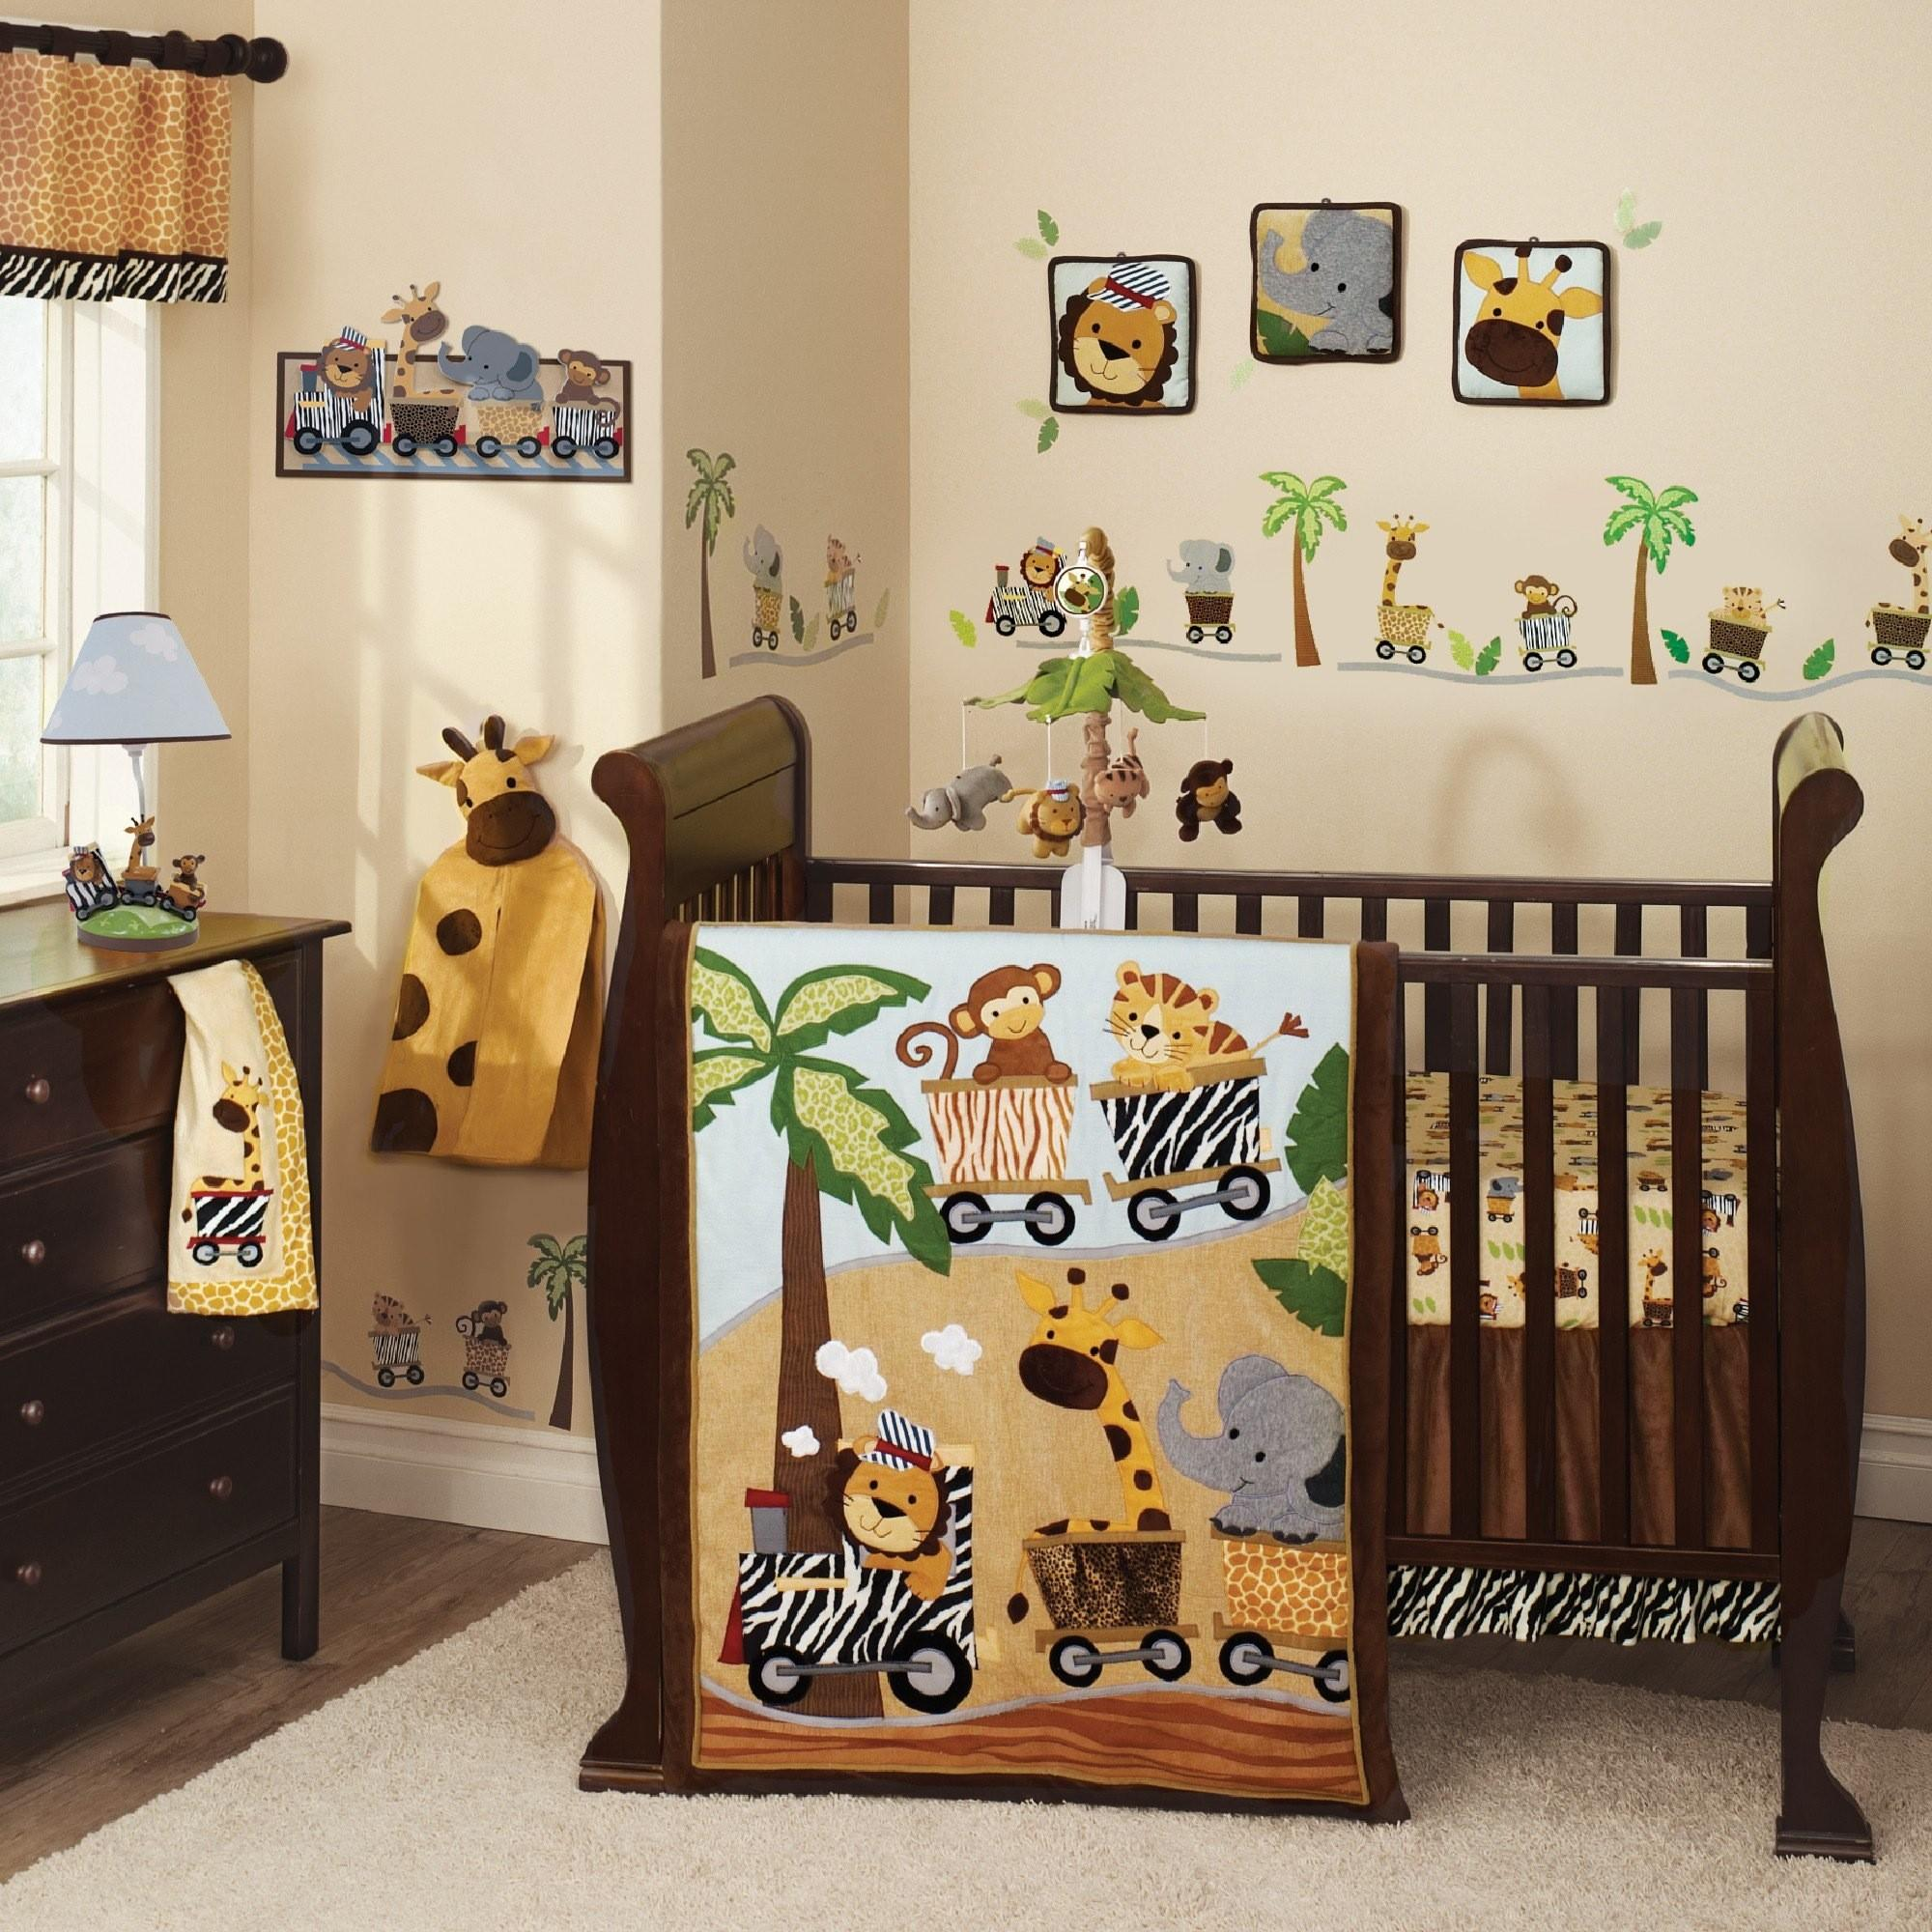 Nursery Wall Decals Kids Room Stickers Brightly Colored